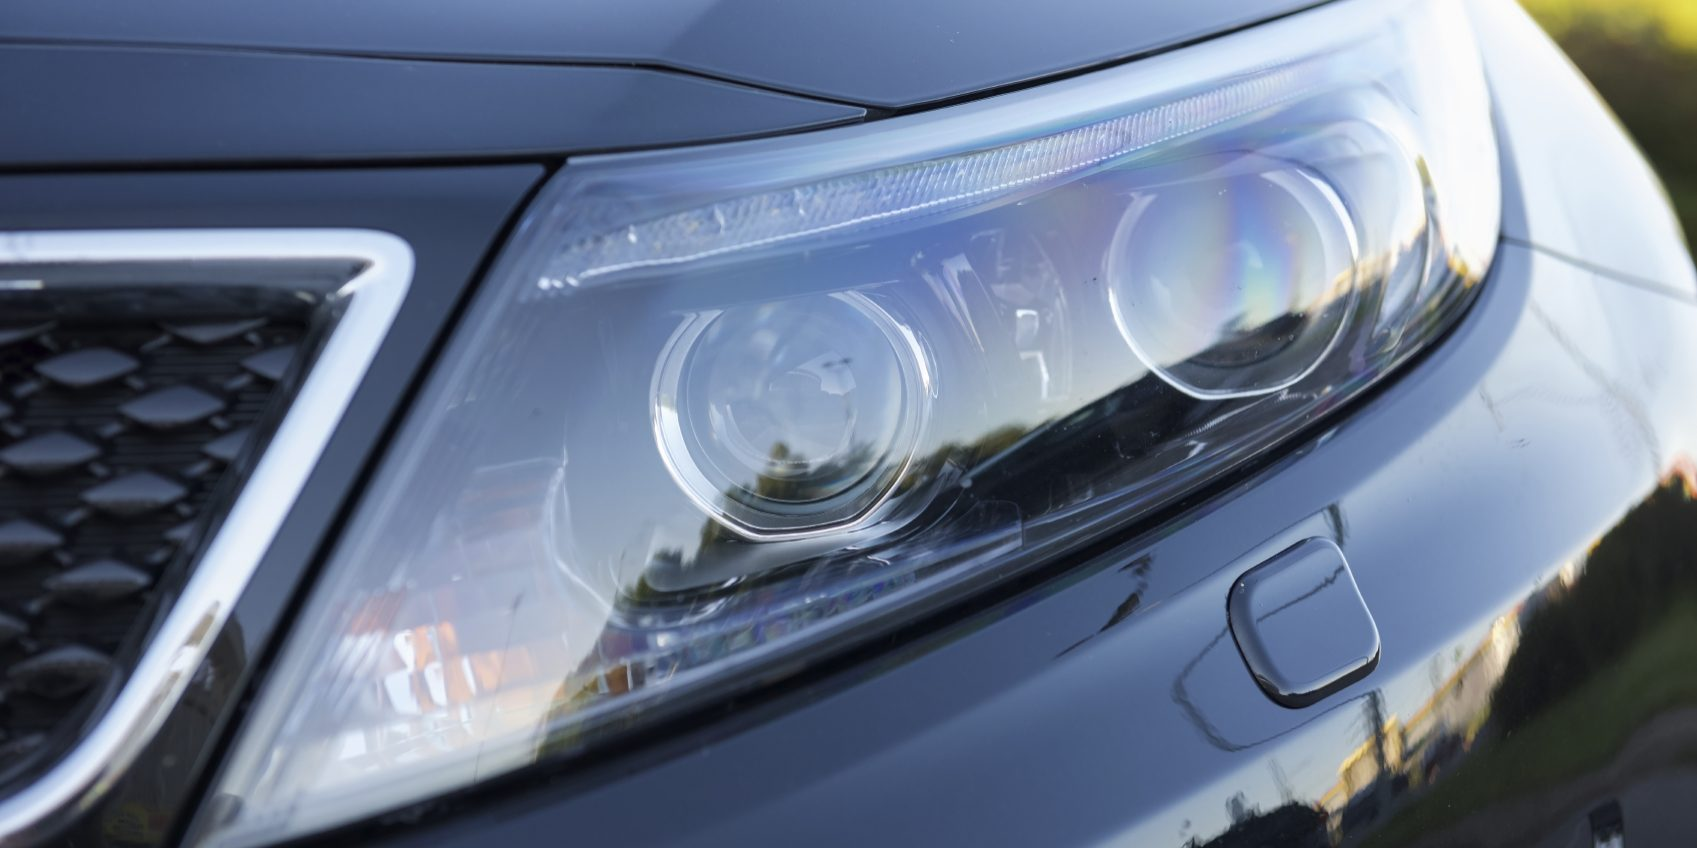 Luxury Car Headlight - Bankruptcy Repossession